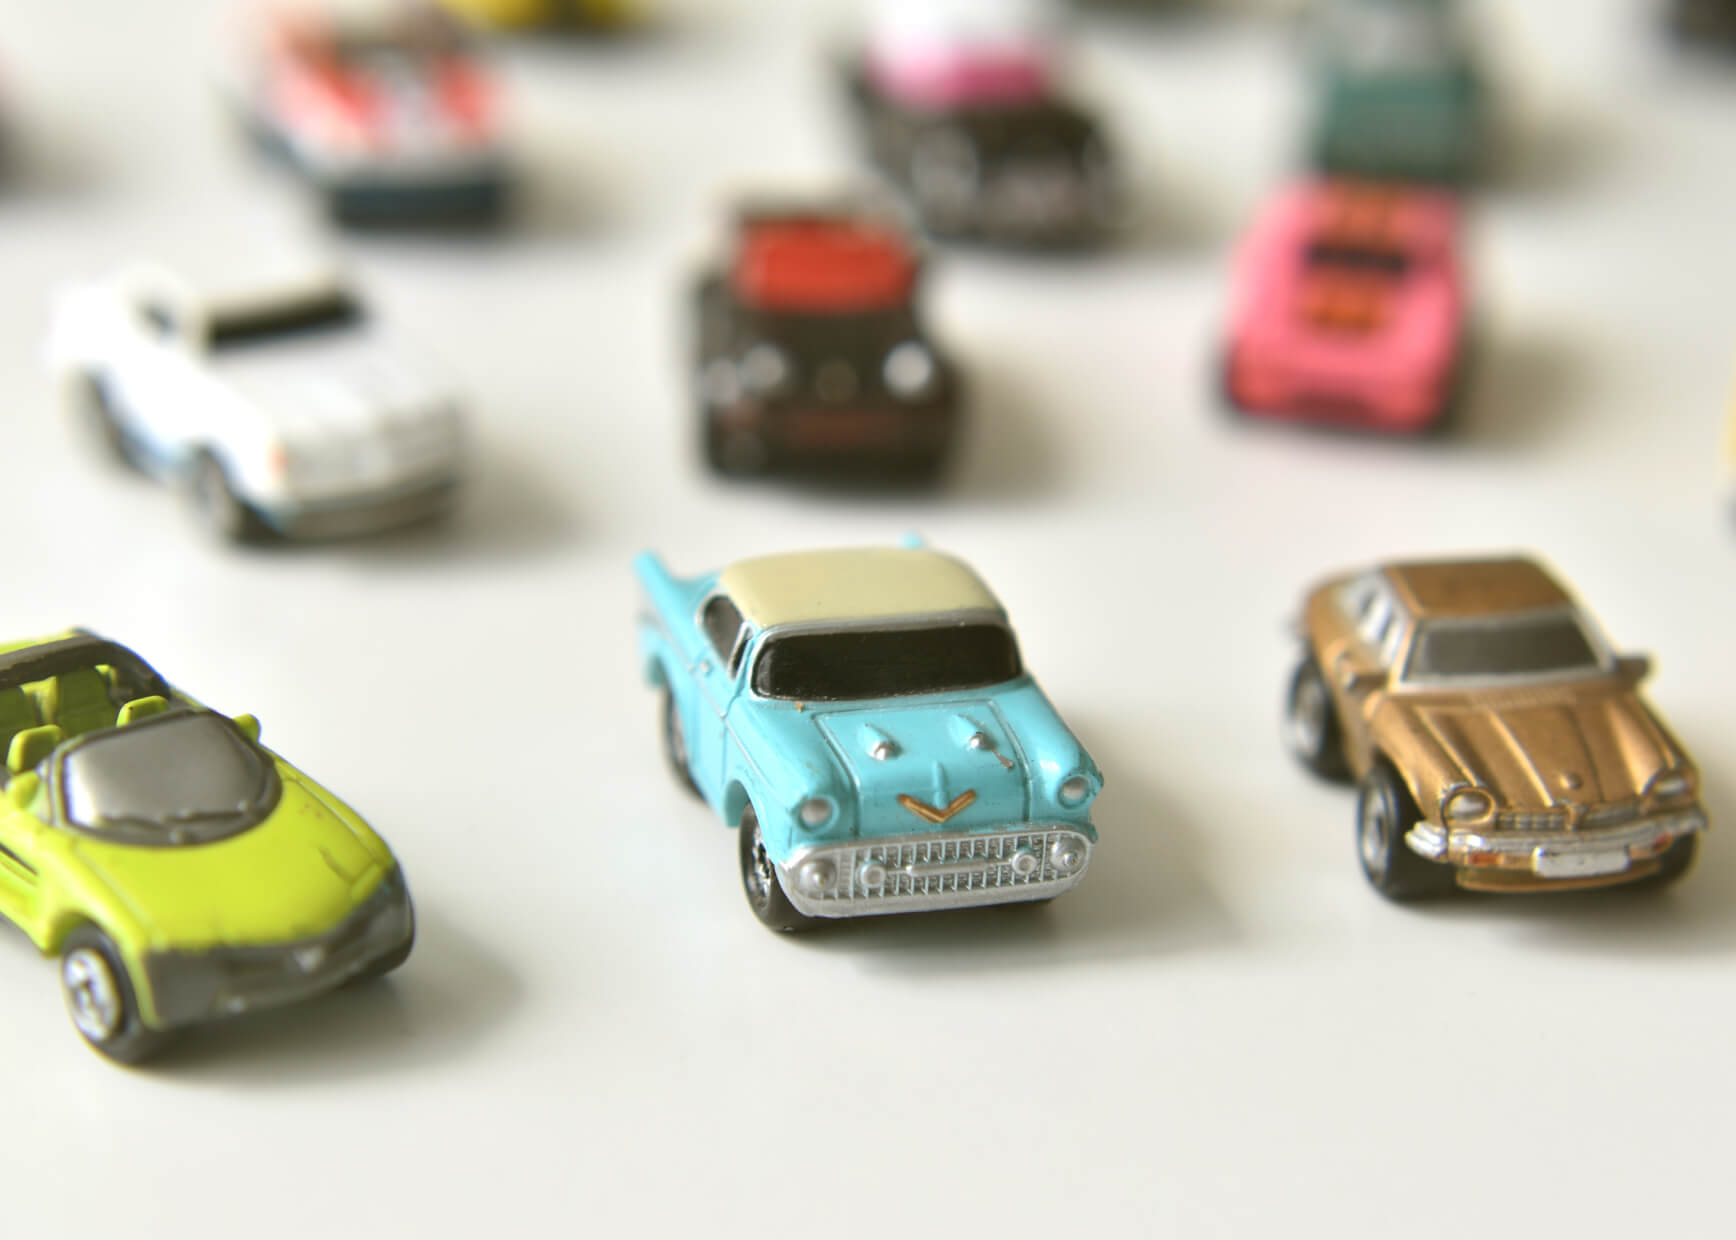 Photo of small toy cars.